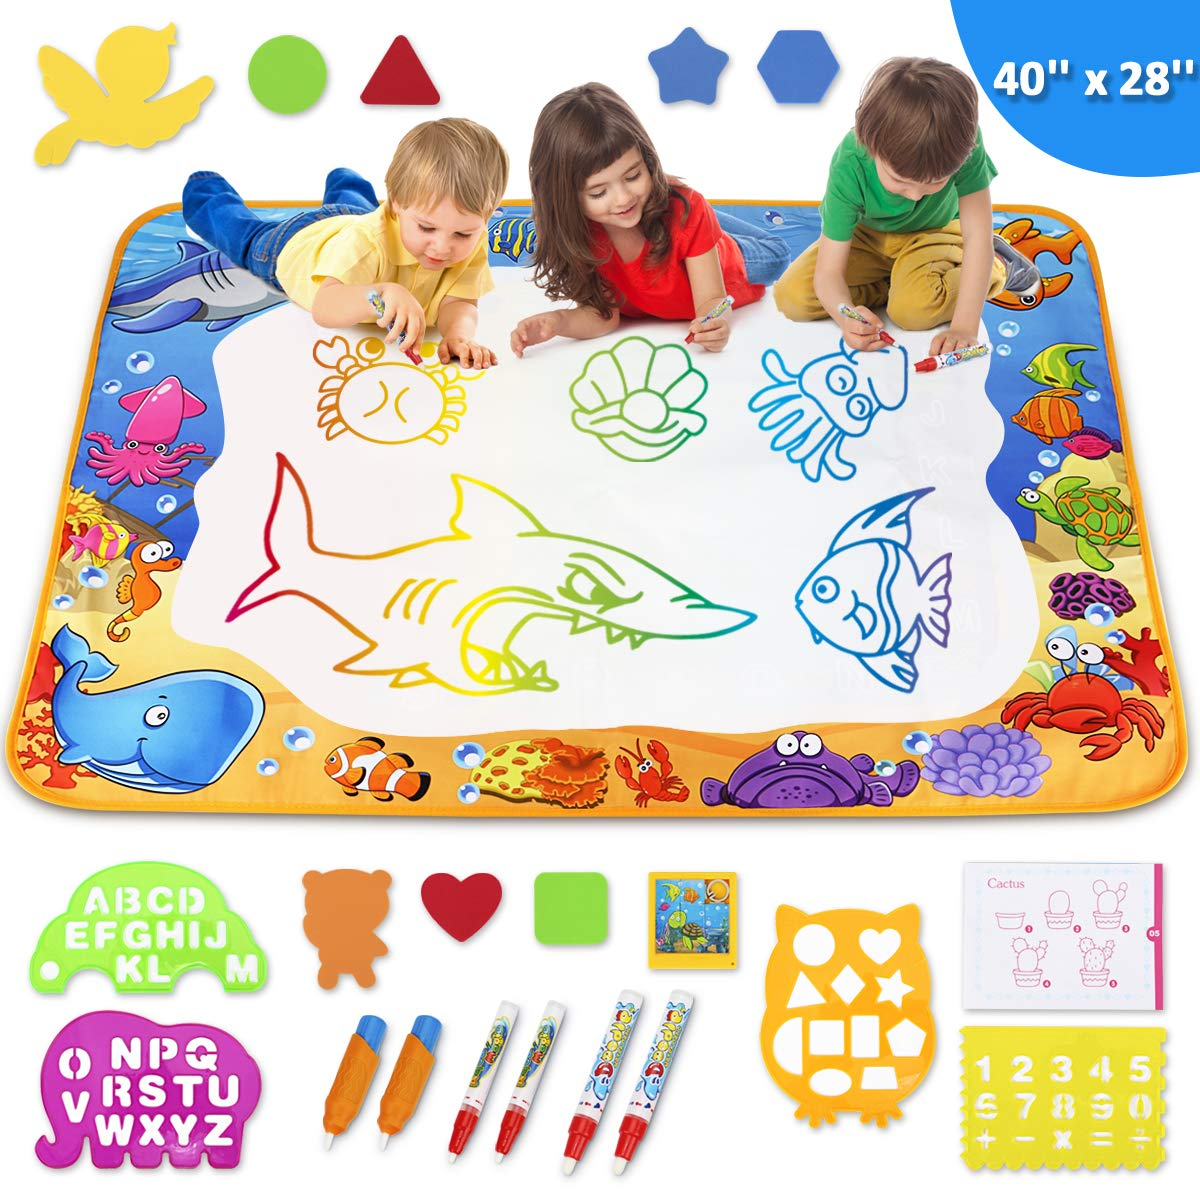 Toyk Aqua Magic Mat - Kids Painting Writing Doodle Board Toy